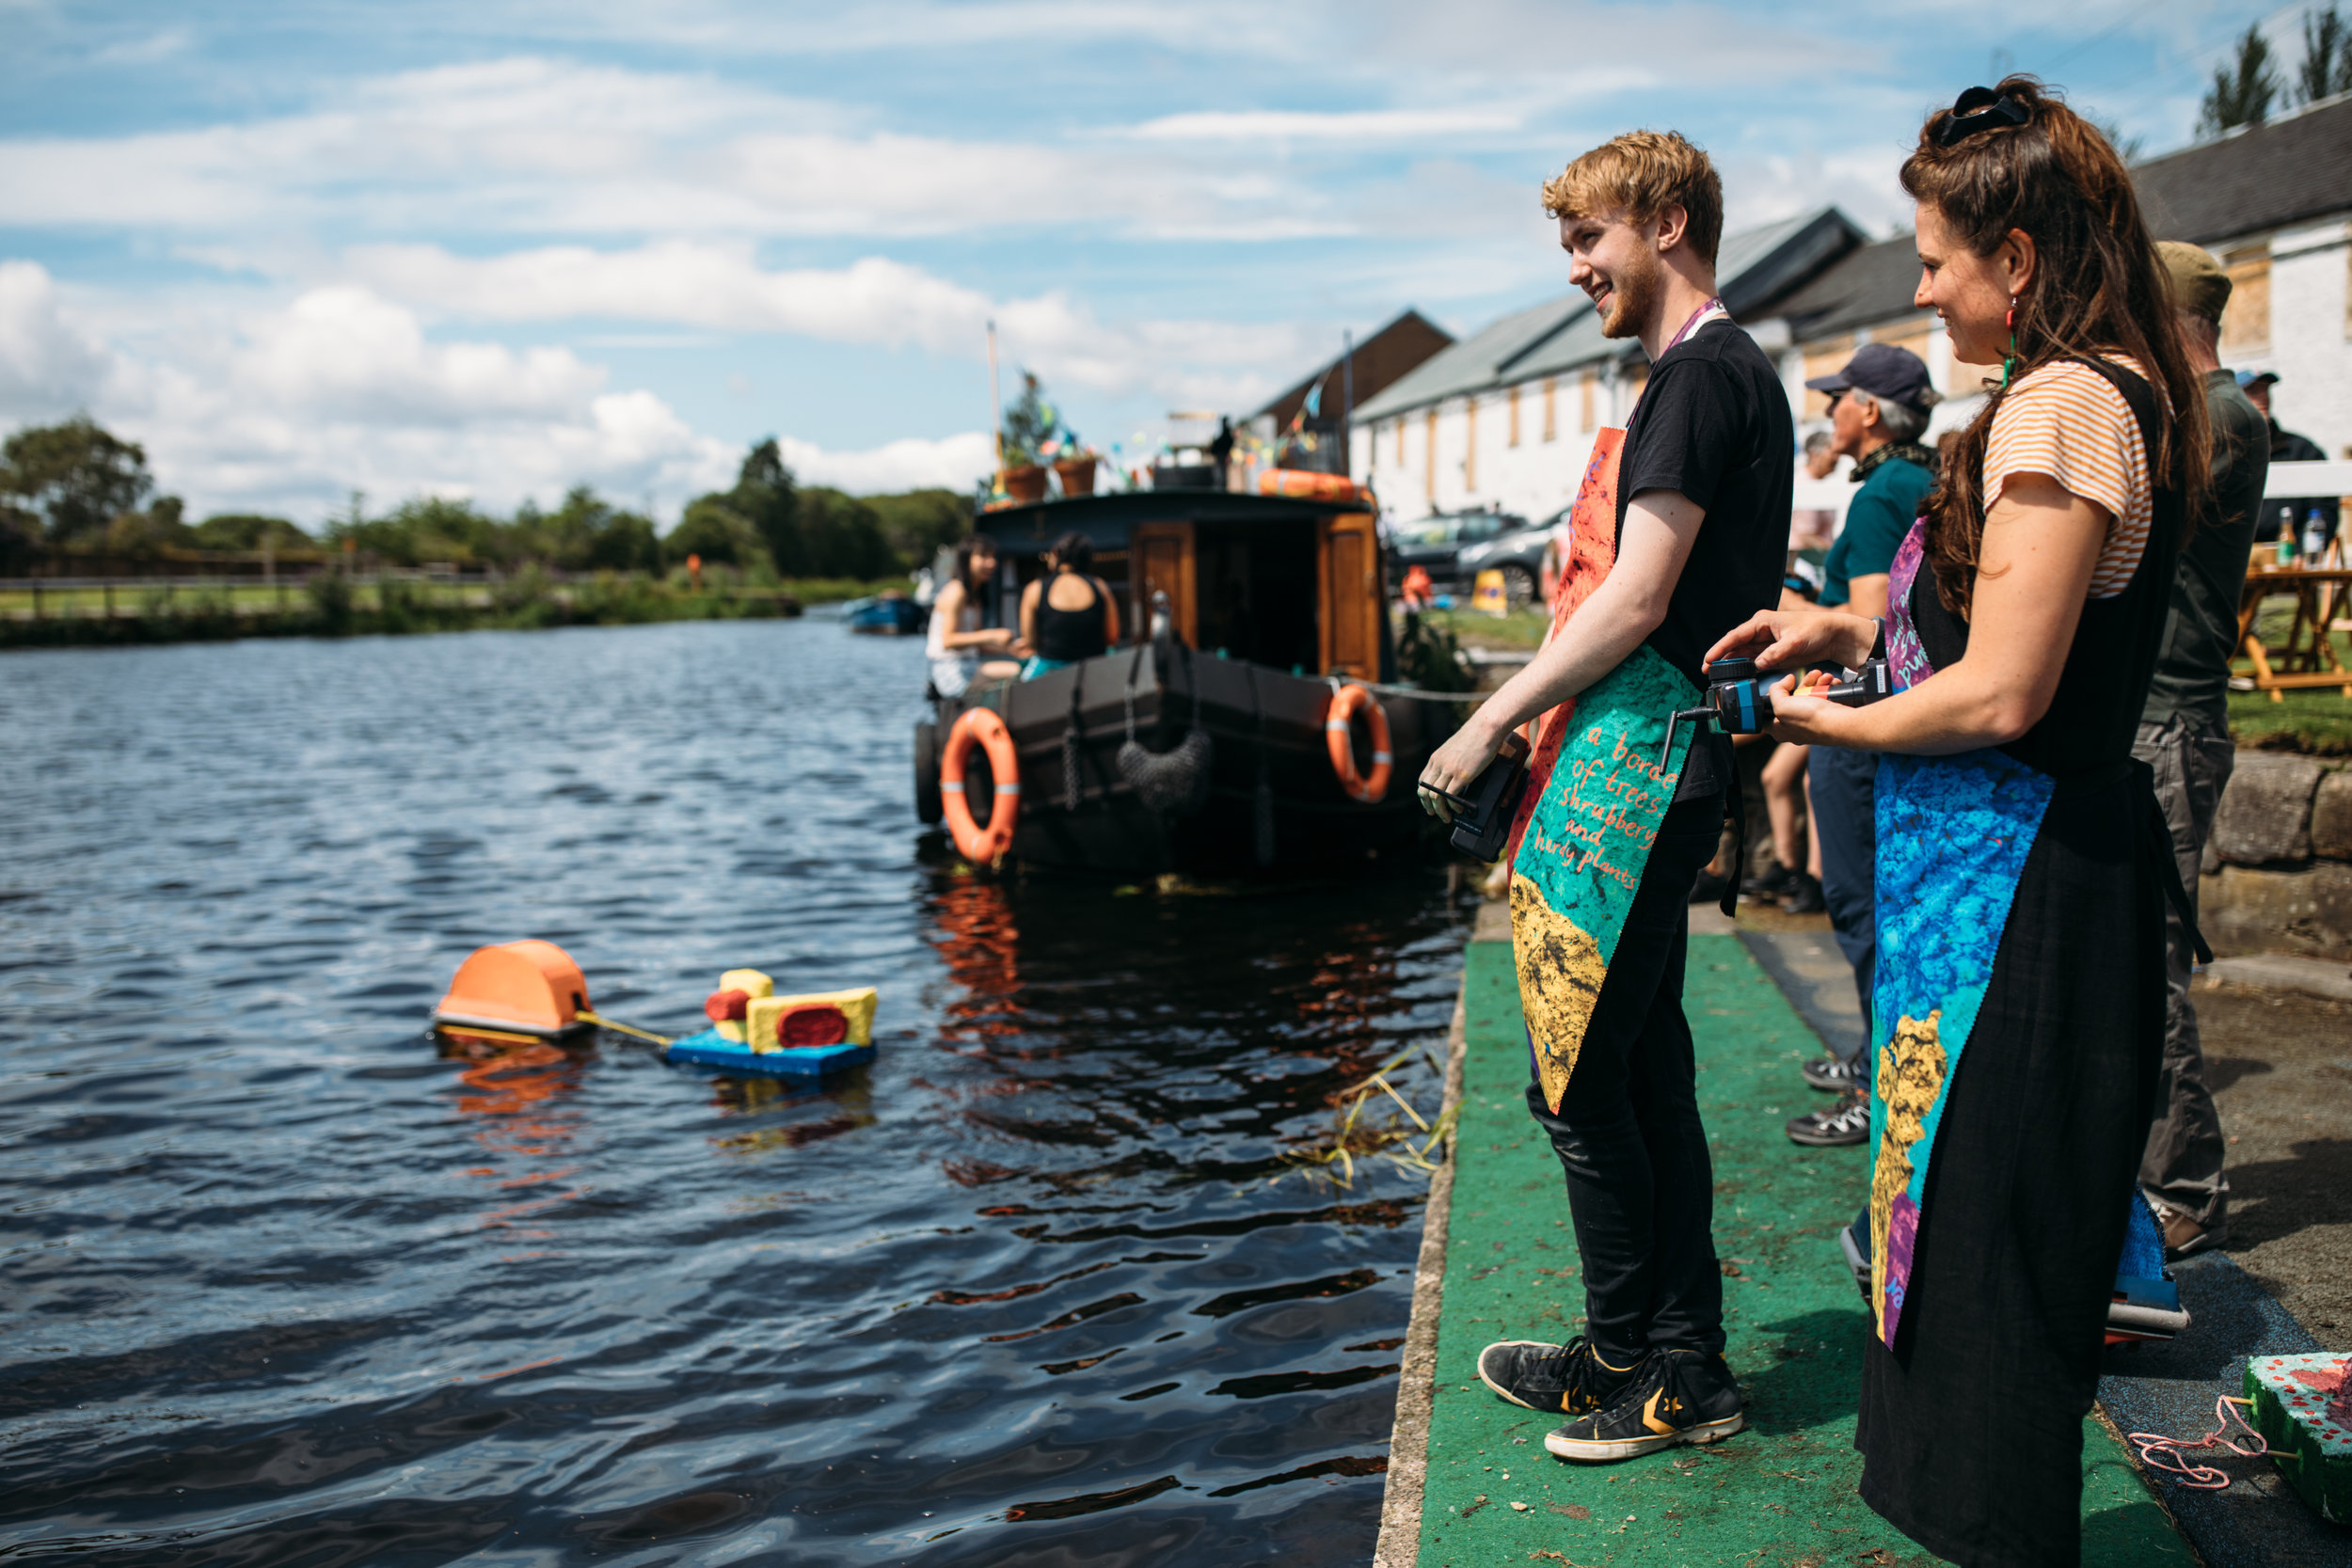 Pulpworks - Pester & Rossi  Commissioned for the 2019 Glasgow Canal Festival  Photography ©JassyEarl